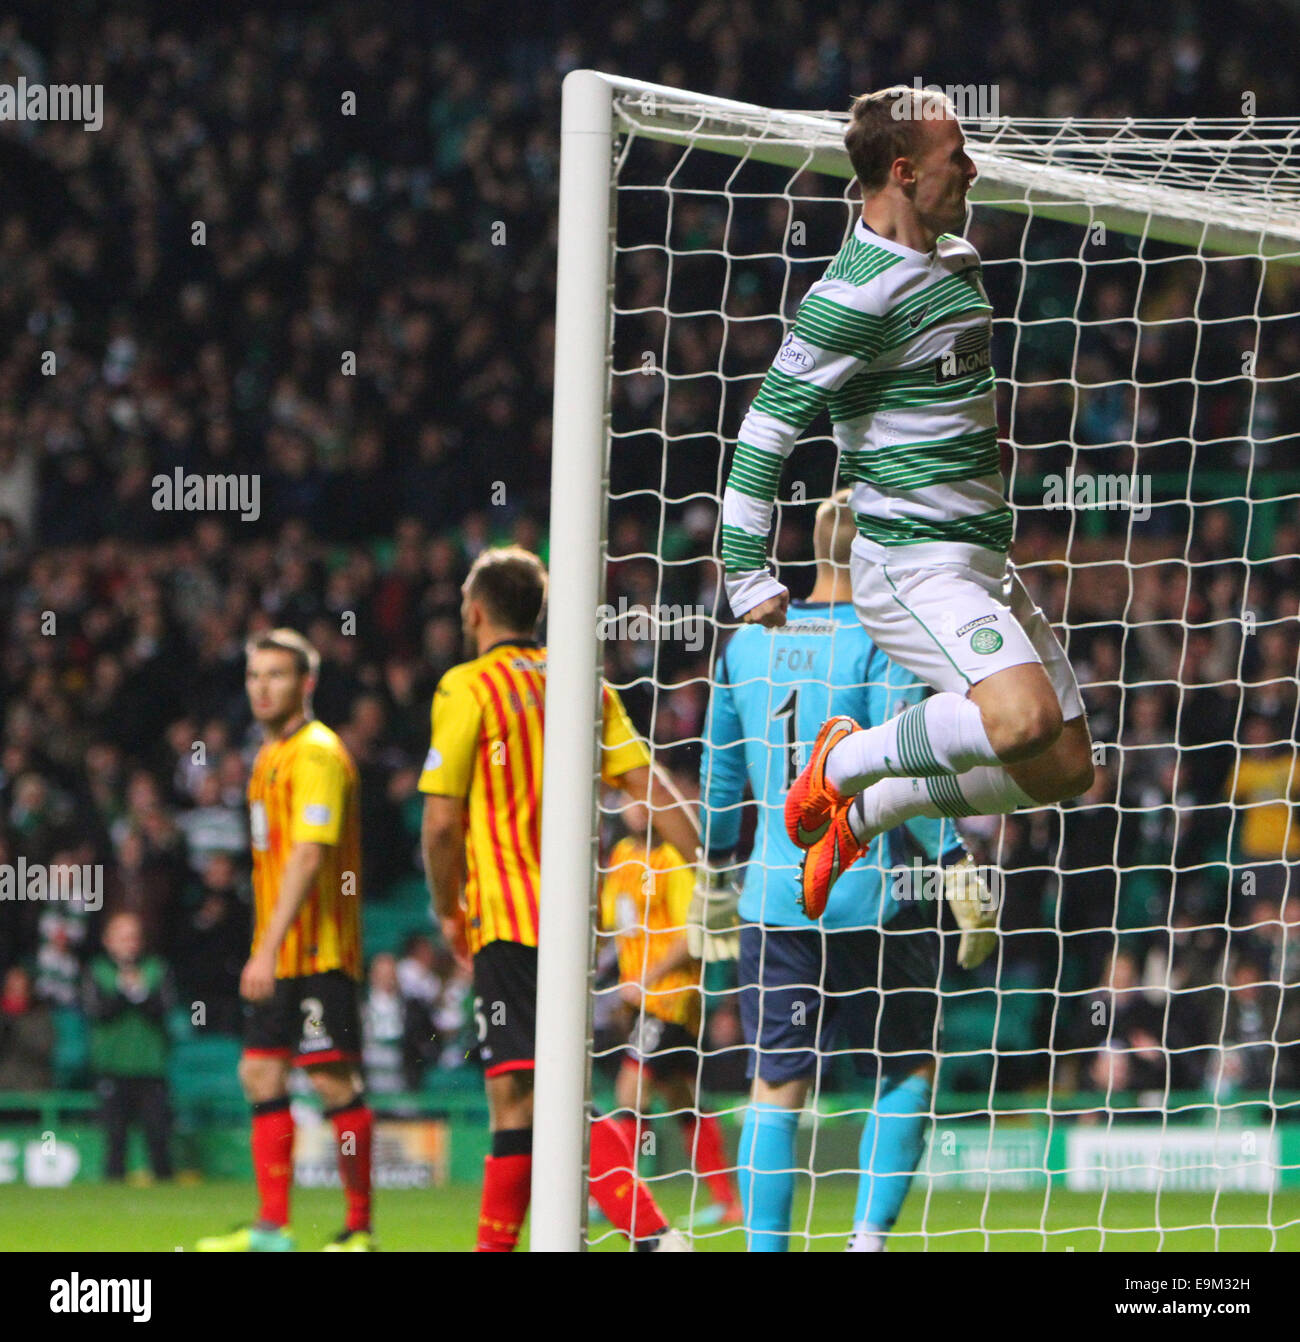 Glasgow, Scotland. 29th Oct, 2014. Scottish League Cup. Celtic versus Partick Thistle. Leigh Griffiths jumps for - Stock Image